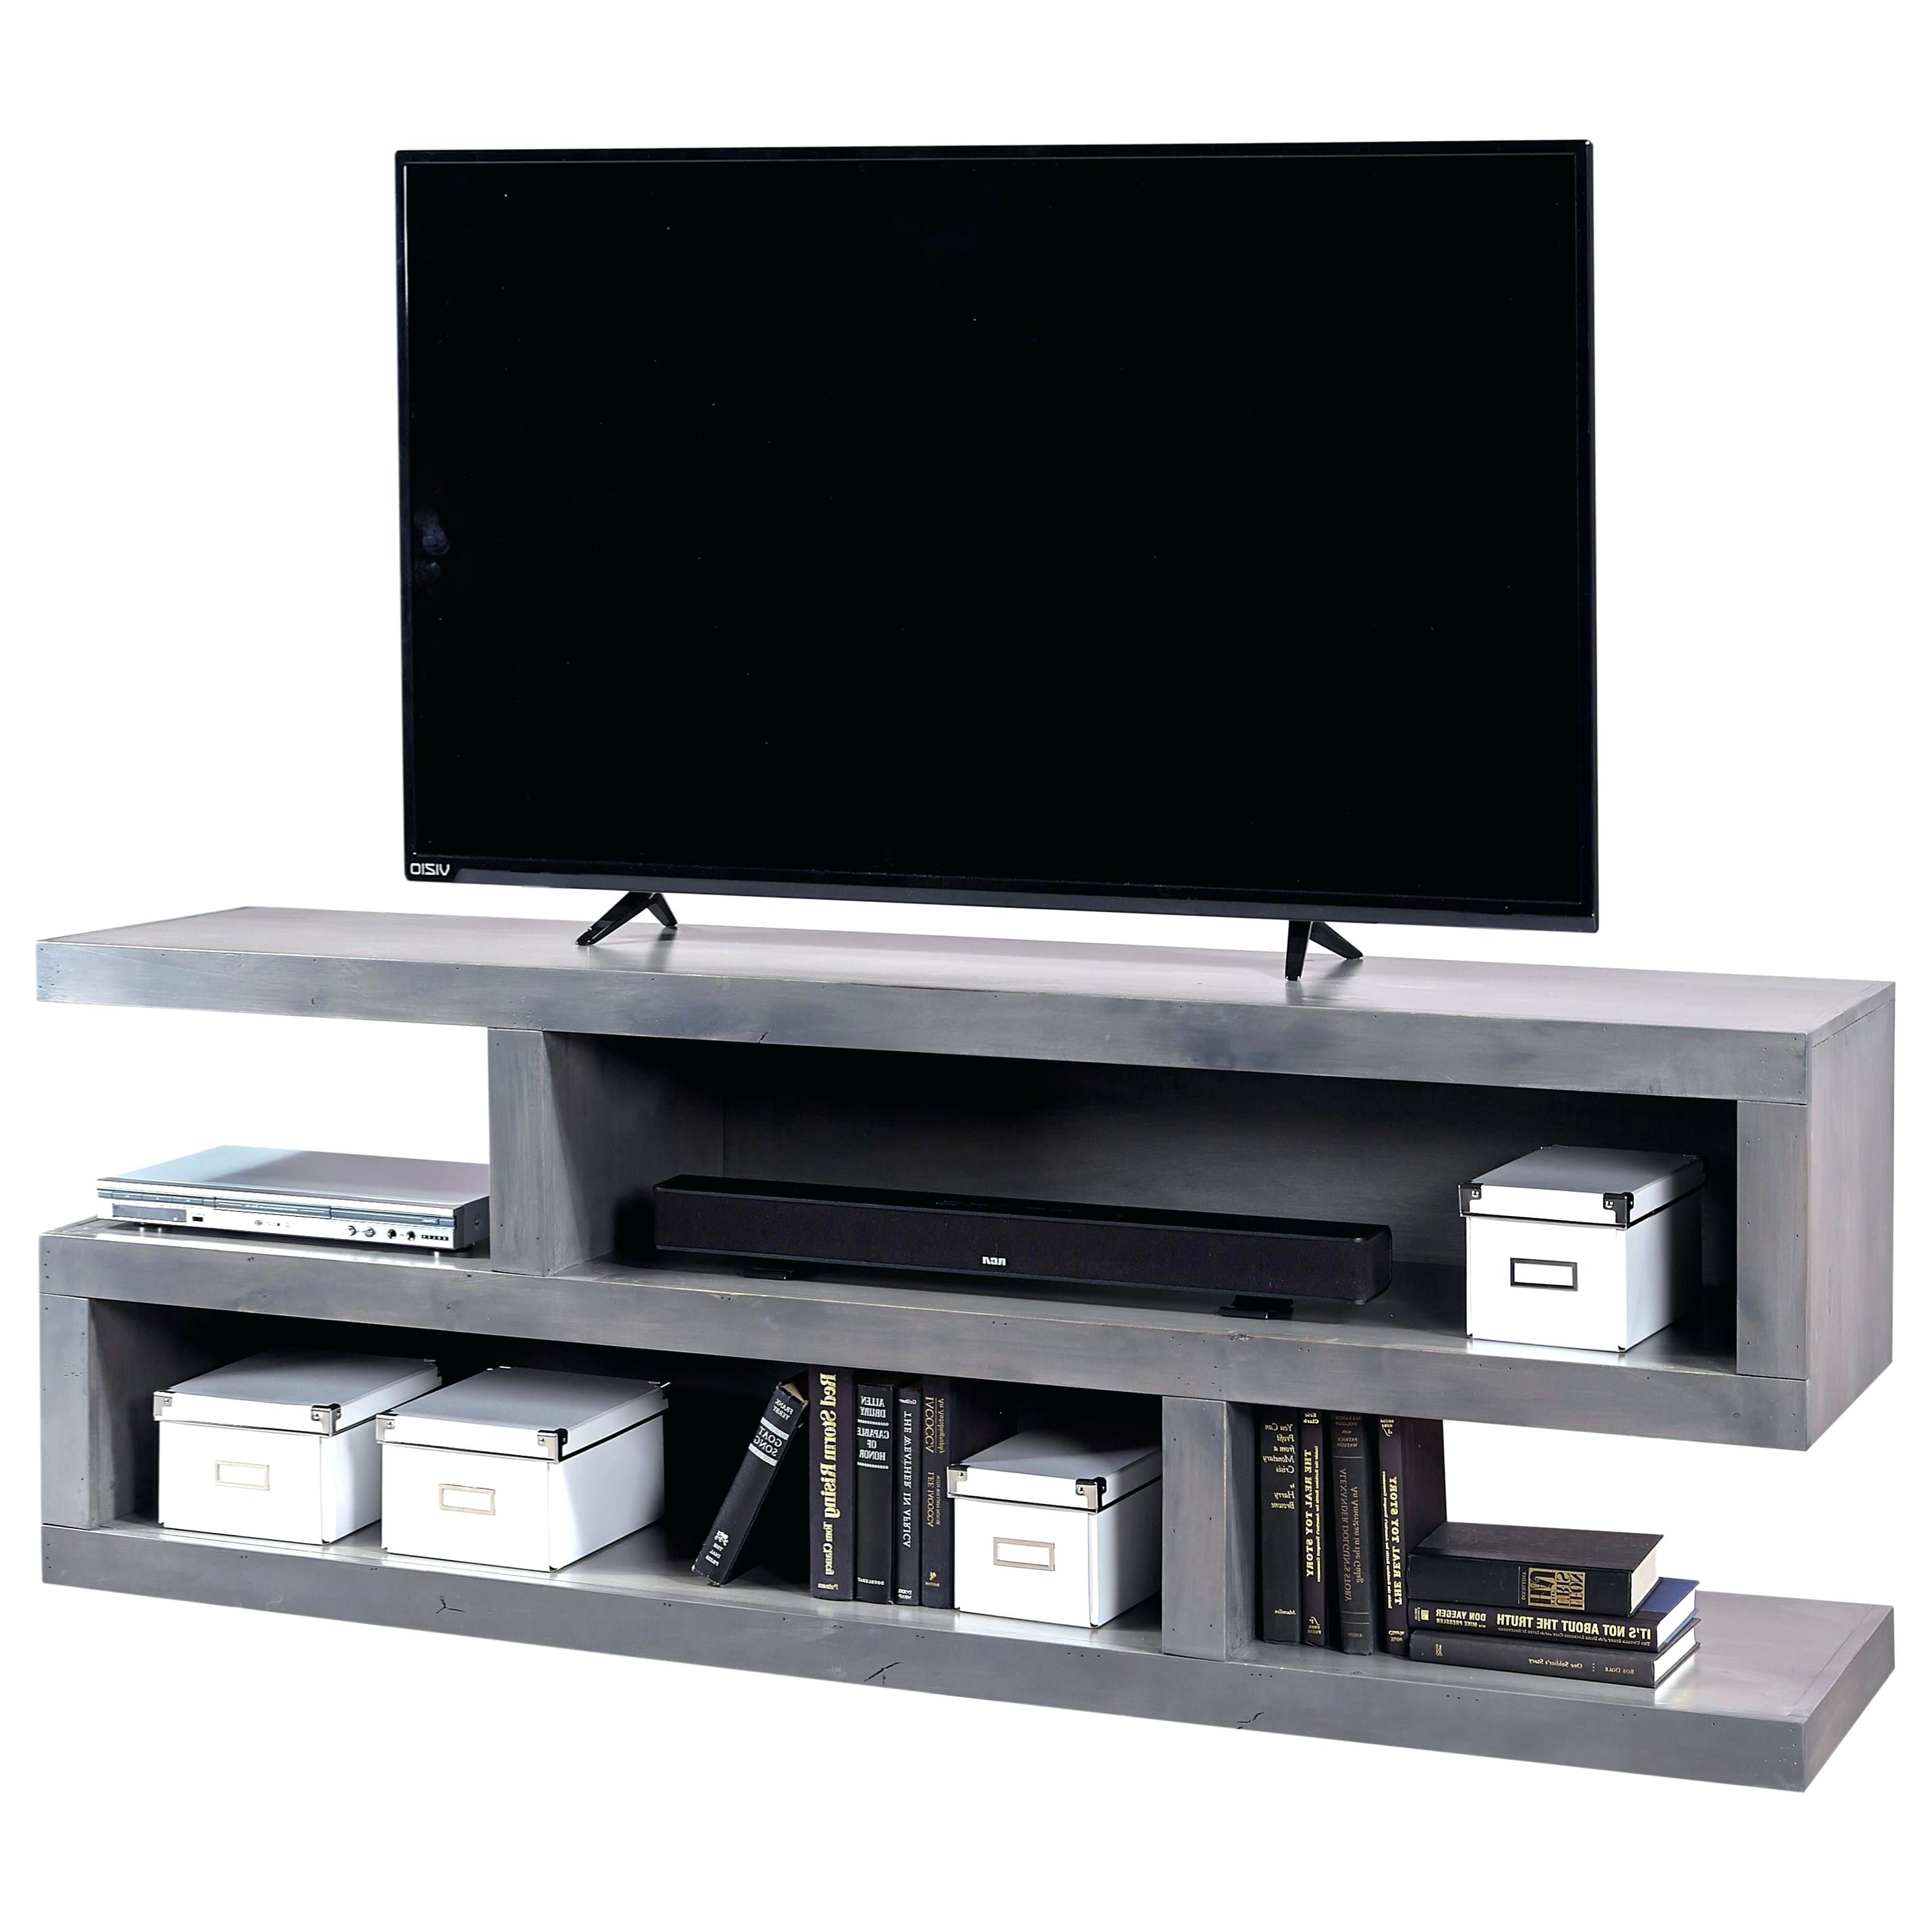 Most Current Threshold Open Shelf Tv Stand Open Shelf Stand Open Shelf Stand 1 For Open Shelf Tv Stands (View 6 of 20)